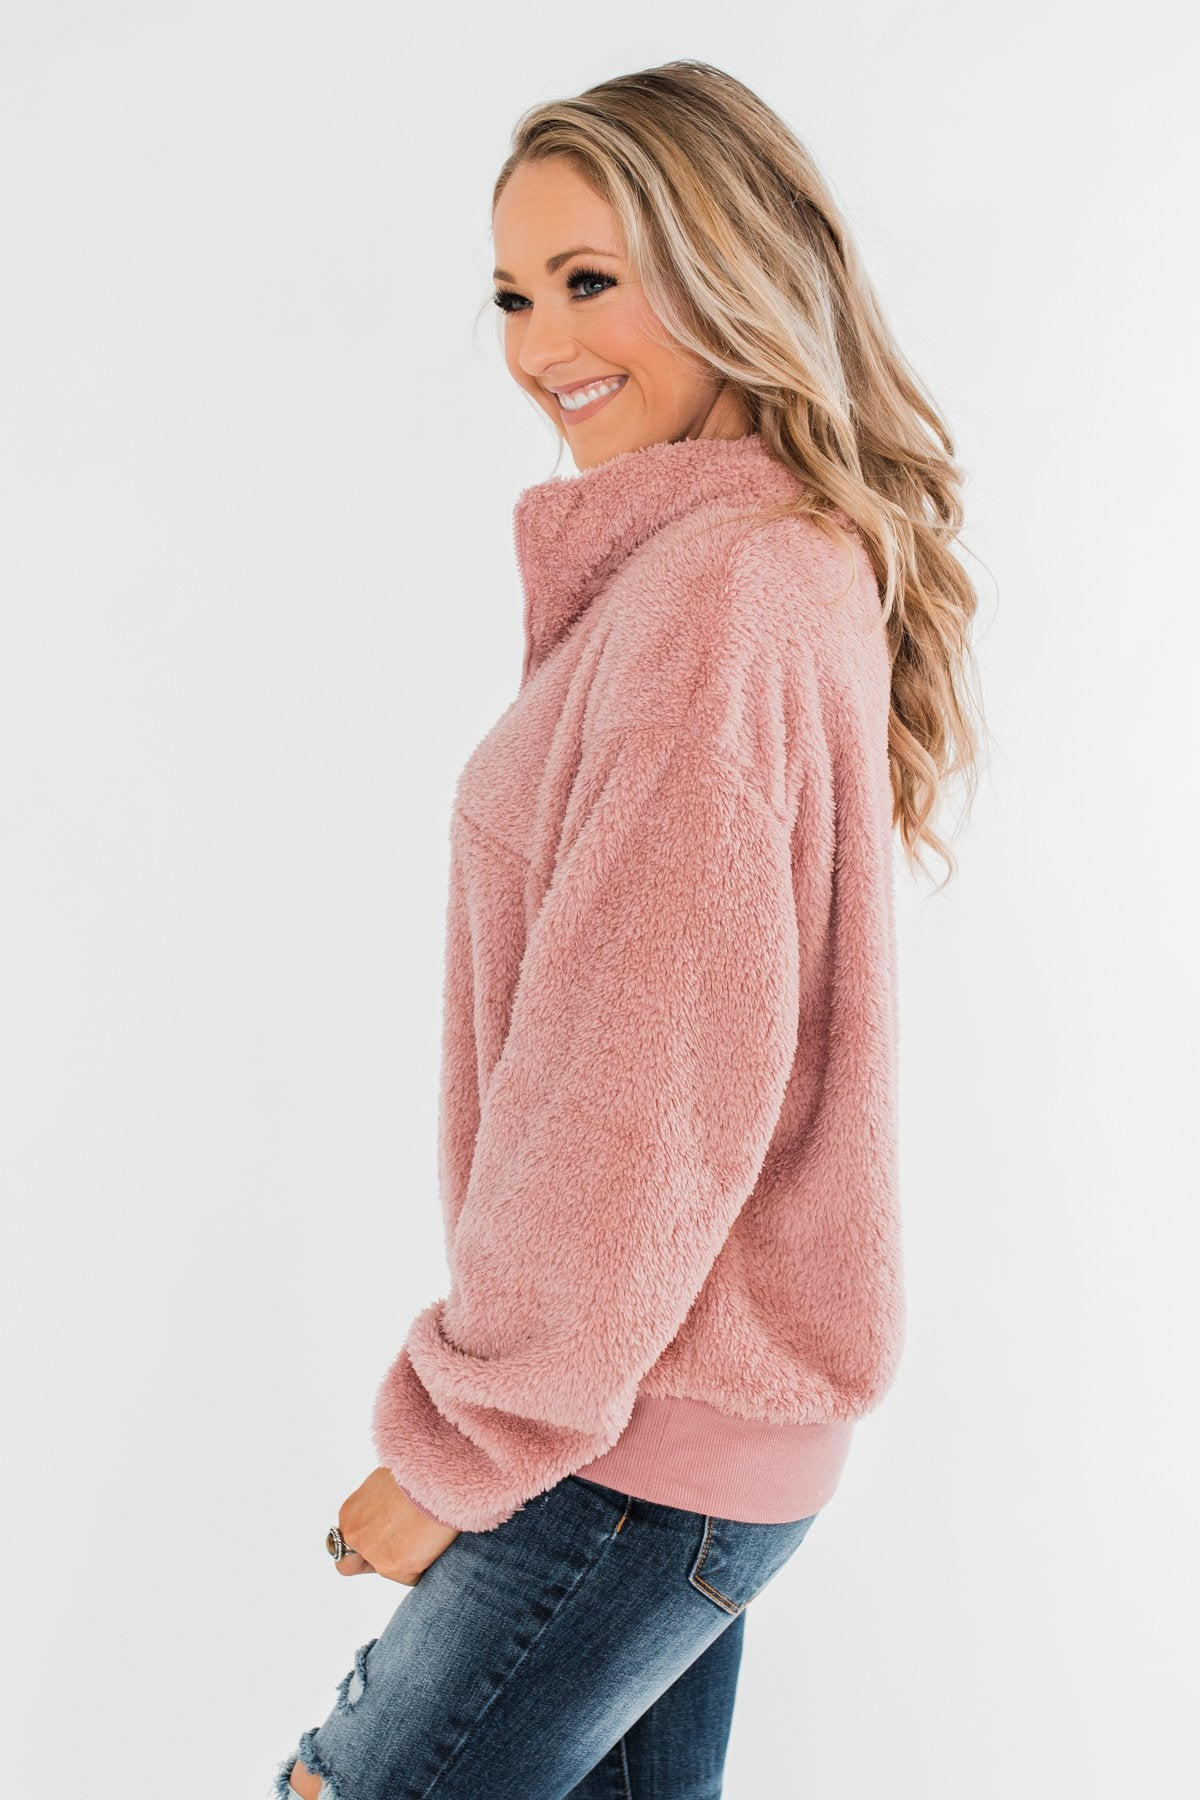 C'est Toi Quarter Zip Pullover Sherpa - Dusty Rose